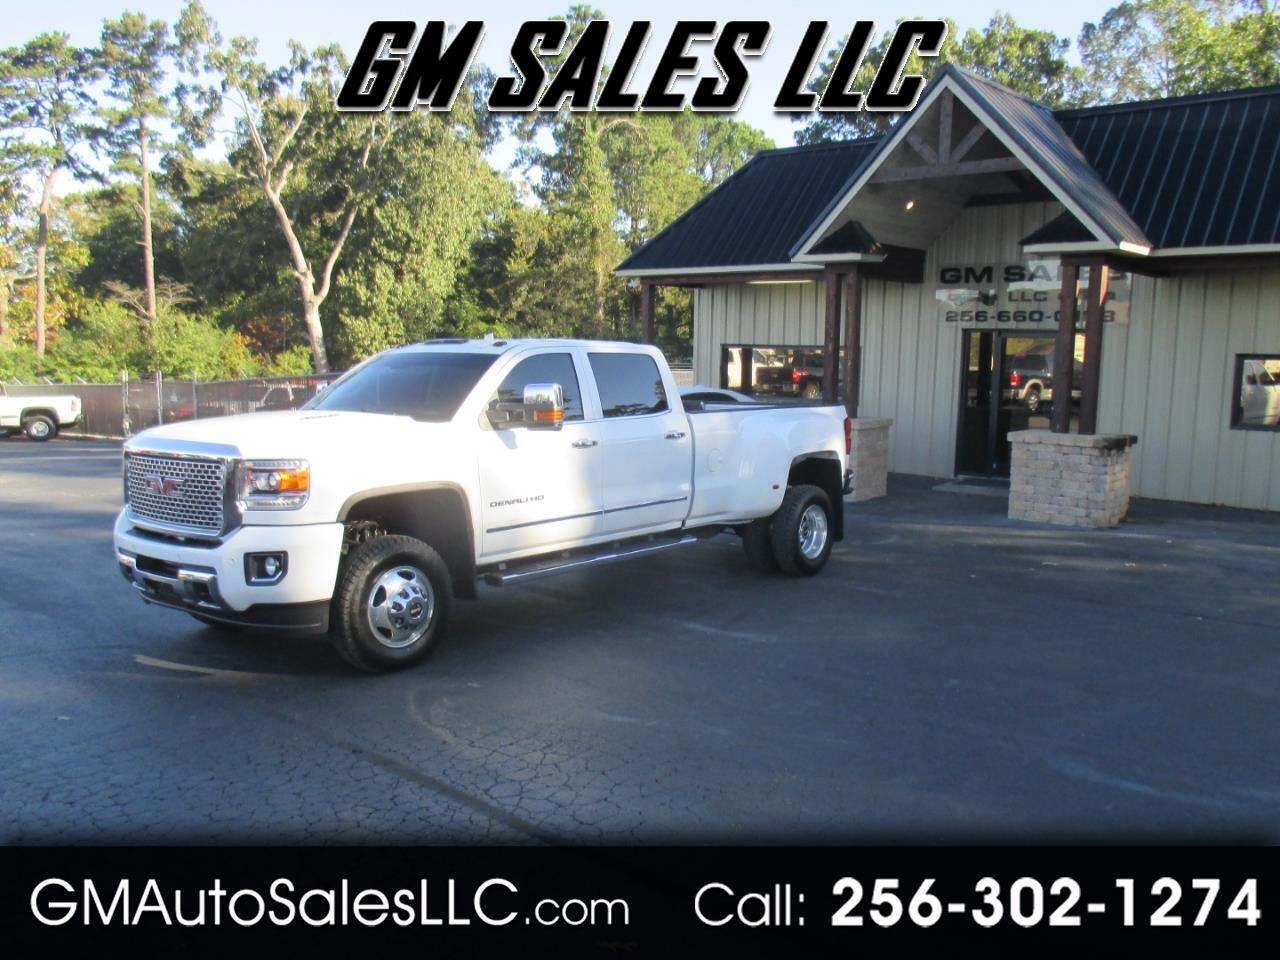 "2015 GMC Sierra 3500HD available WiFi 4WD Crew Cab 167.7"" Denali"